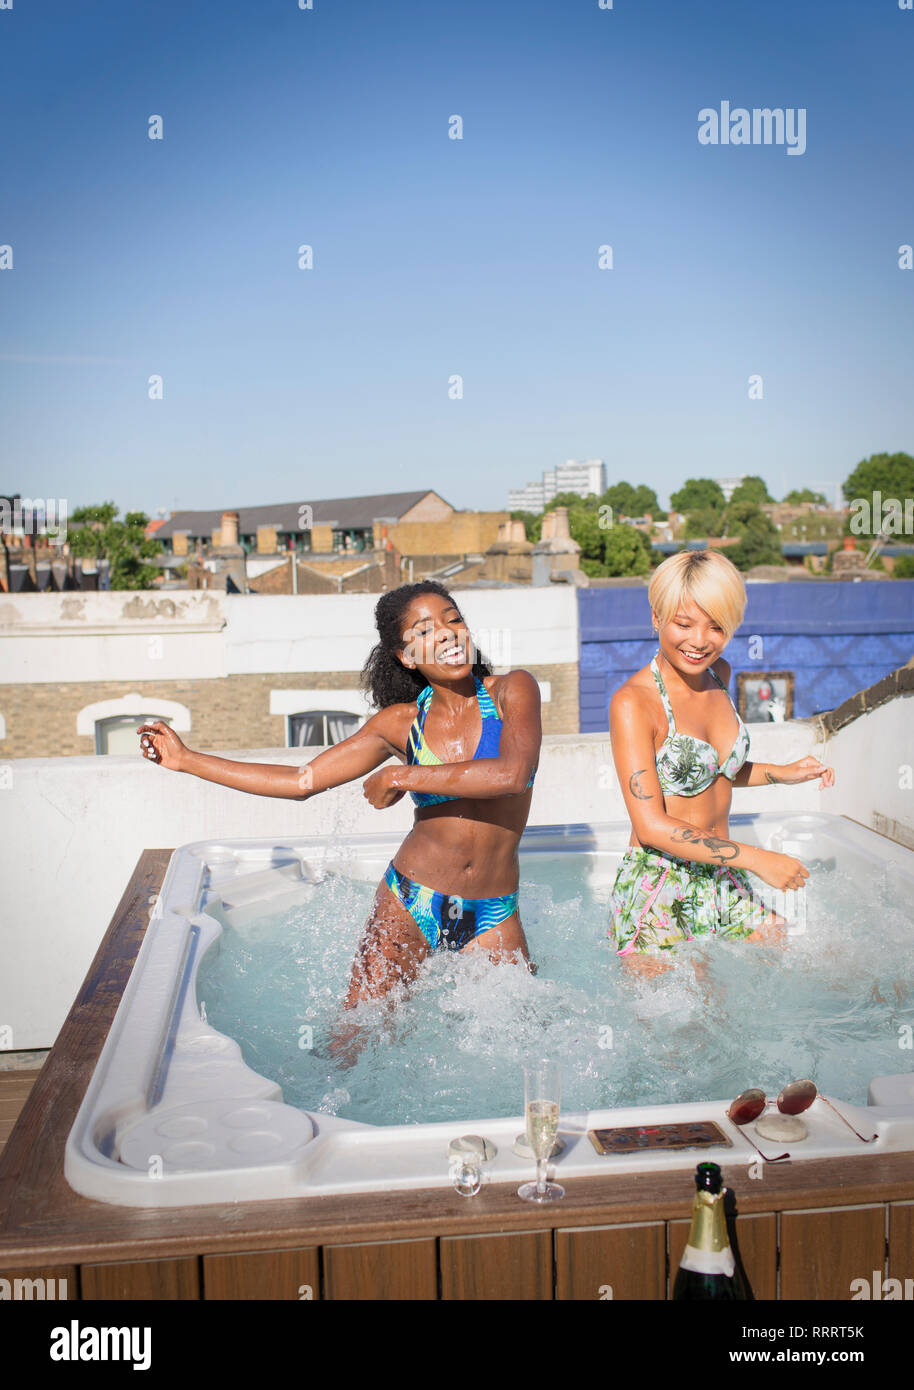 Playful young women friends in bikinis dancing in sunny rooftop hot tub - Stock Image